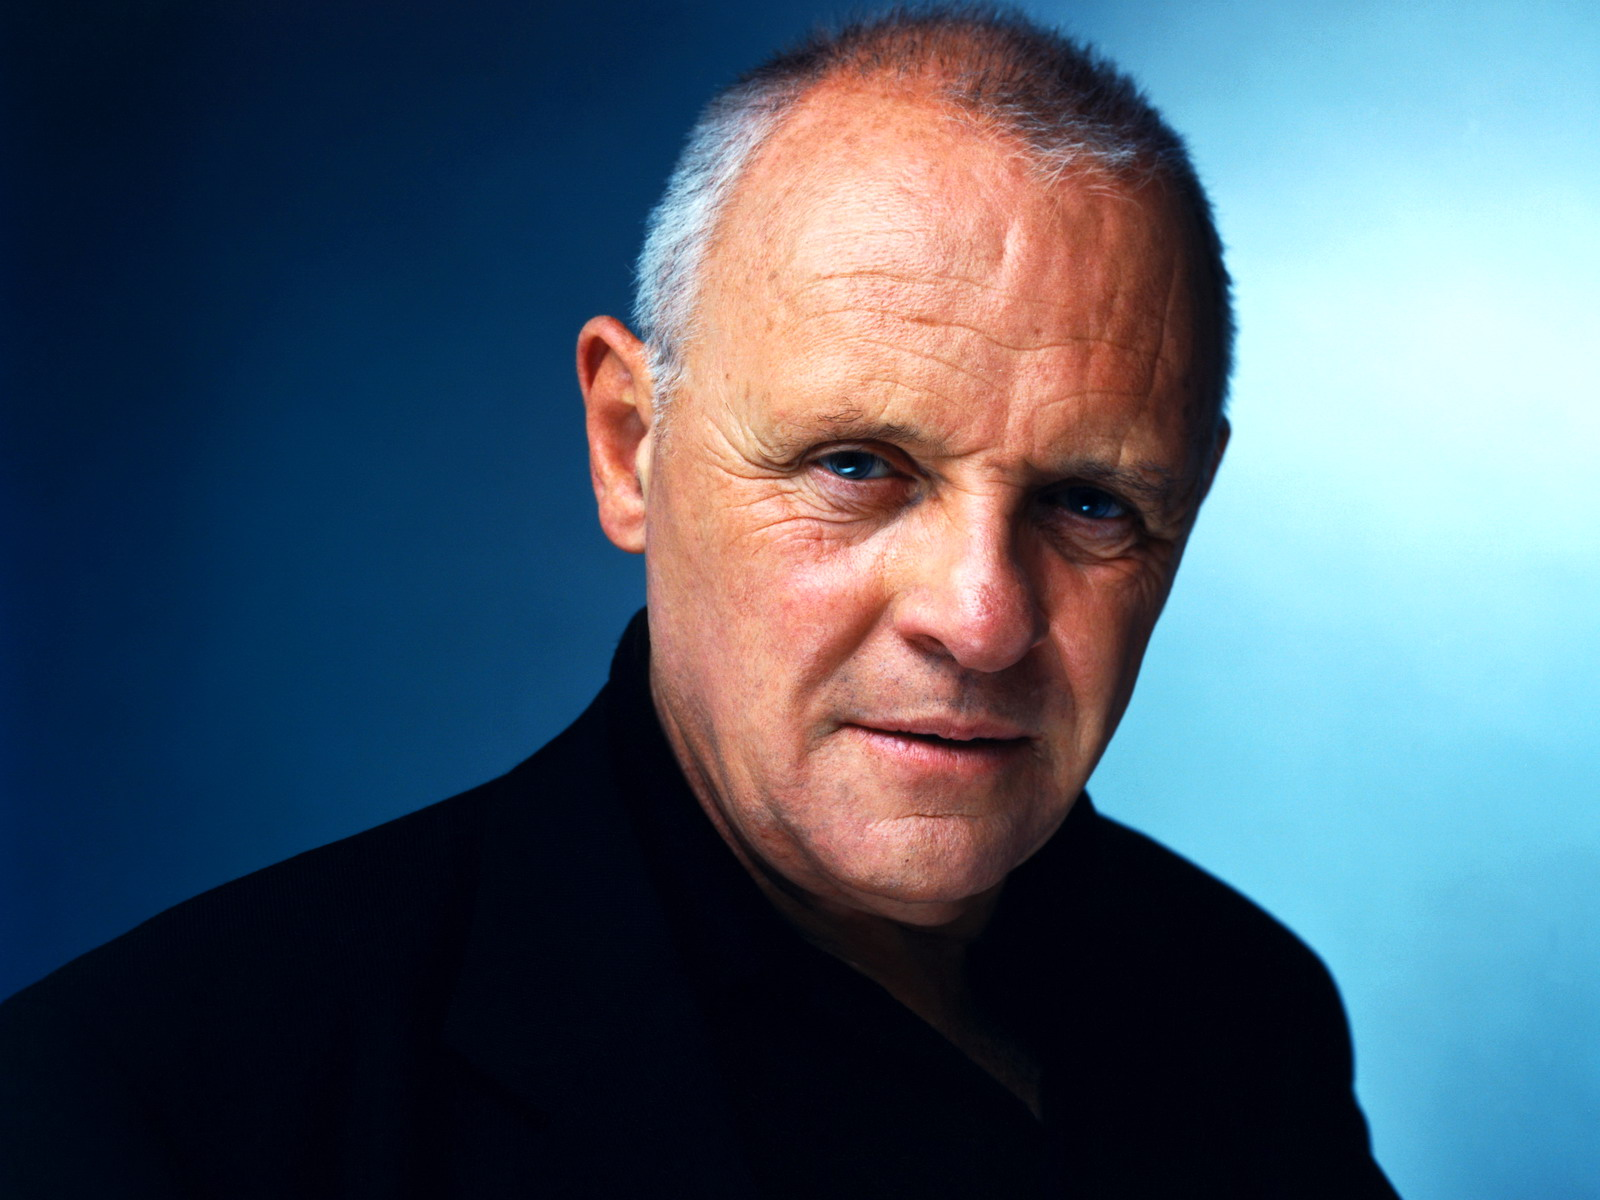 Oscar Winner Anthony Hopkins Cast in J.J. Abrams' New HBO Series 'Westworld' - Nerdcore Movement